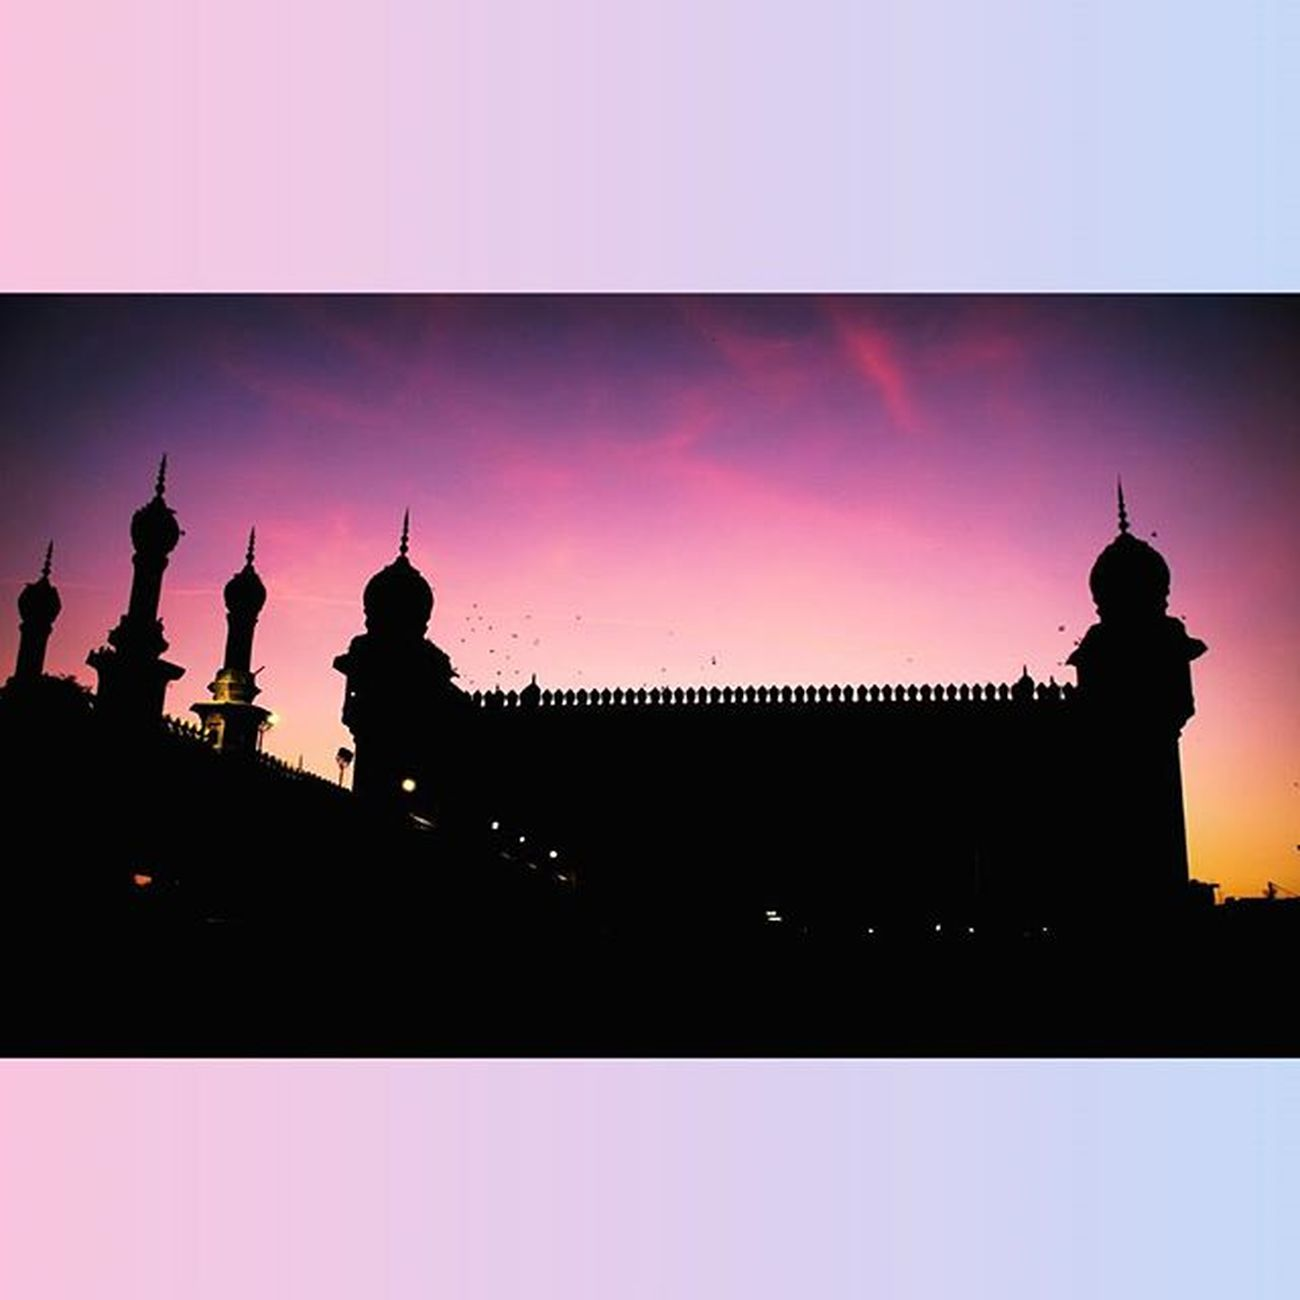 Mecca_masjid India Hyderabad City_of_perals Sunset Sky Canongallery Lowlight Lightroom Instalike Picoftheday Shadow Indiapictures